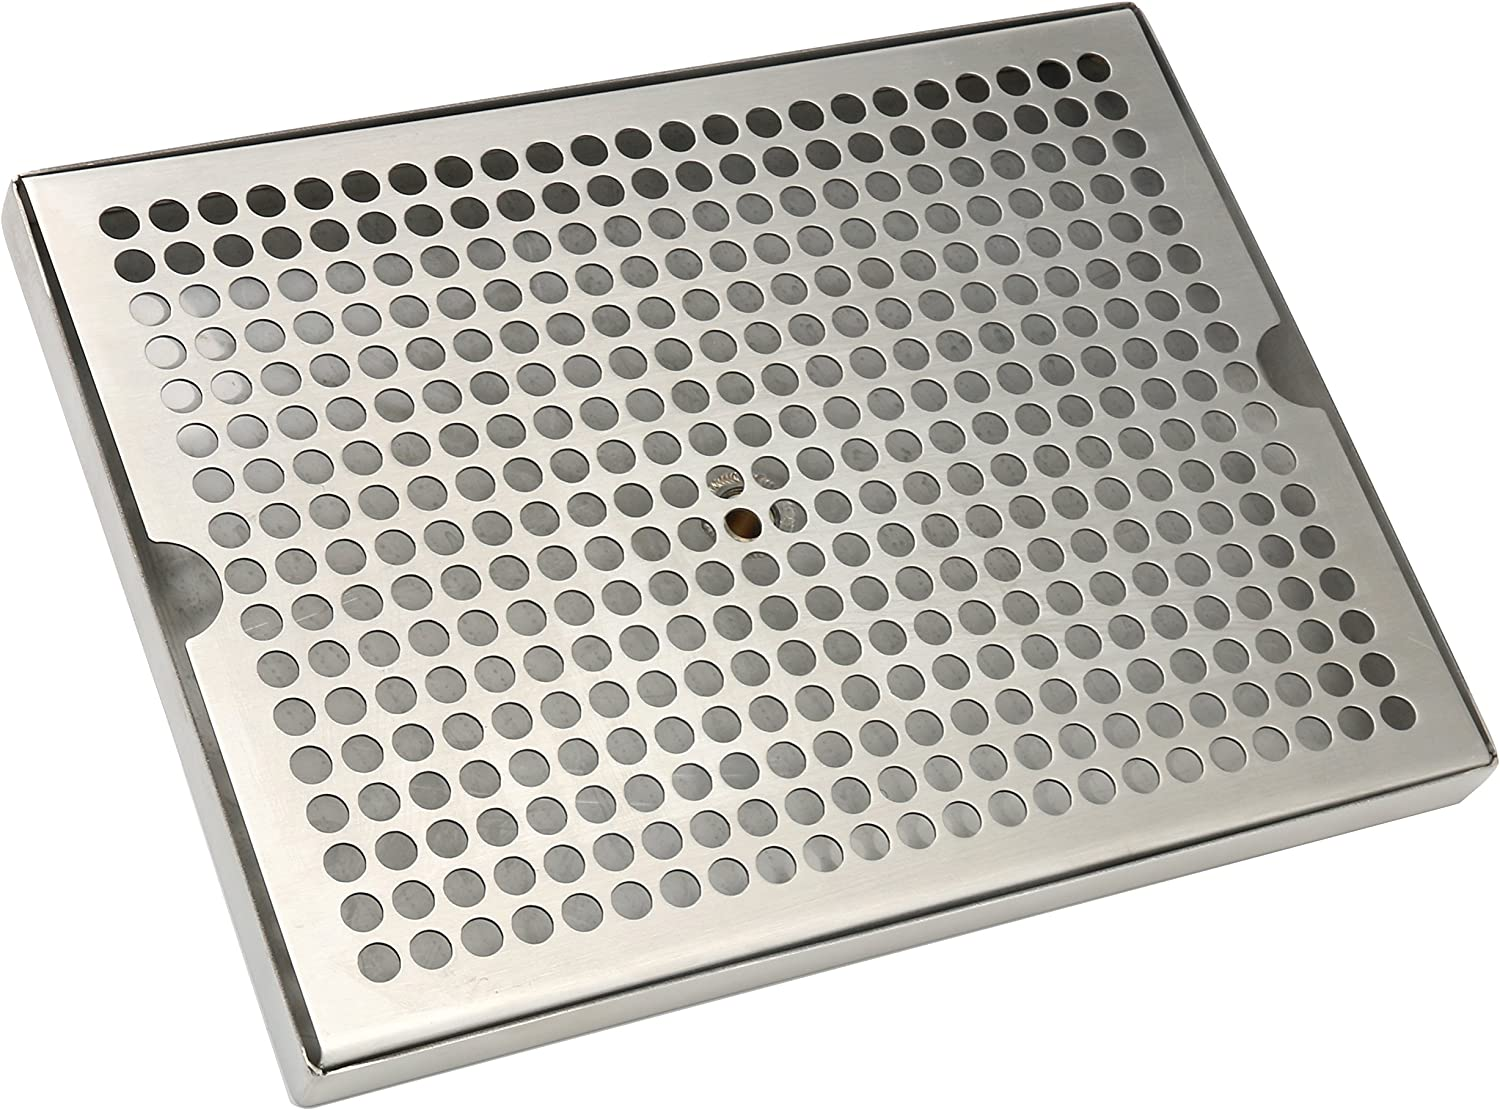 YaeBrew Stainless Steel 12 x 9 Surface Mount Beer Drip Tray with Drain